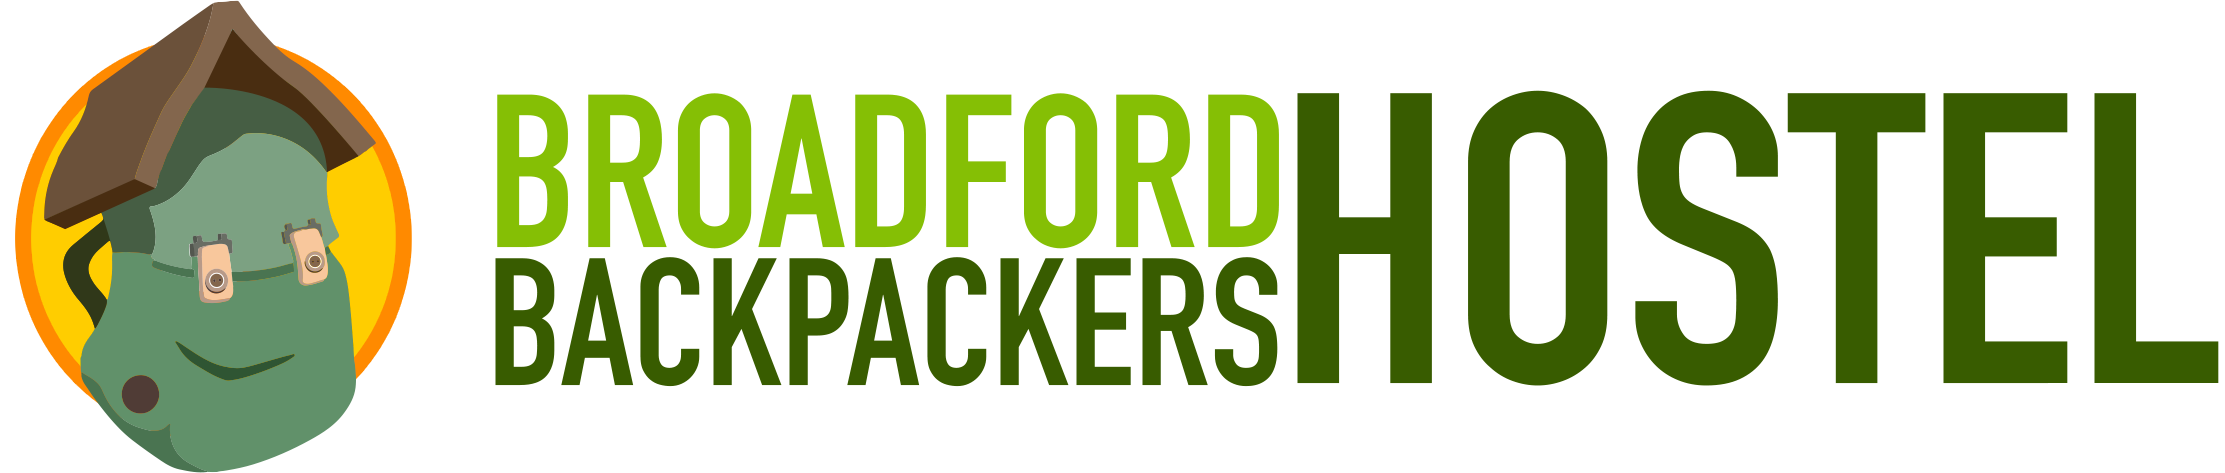 Logo-website Broadford Backpackers hostel Isle of Skye Portree